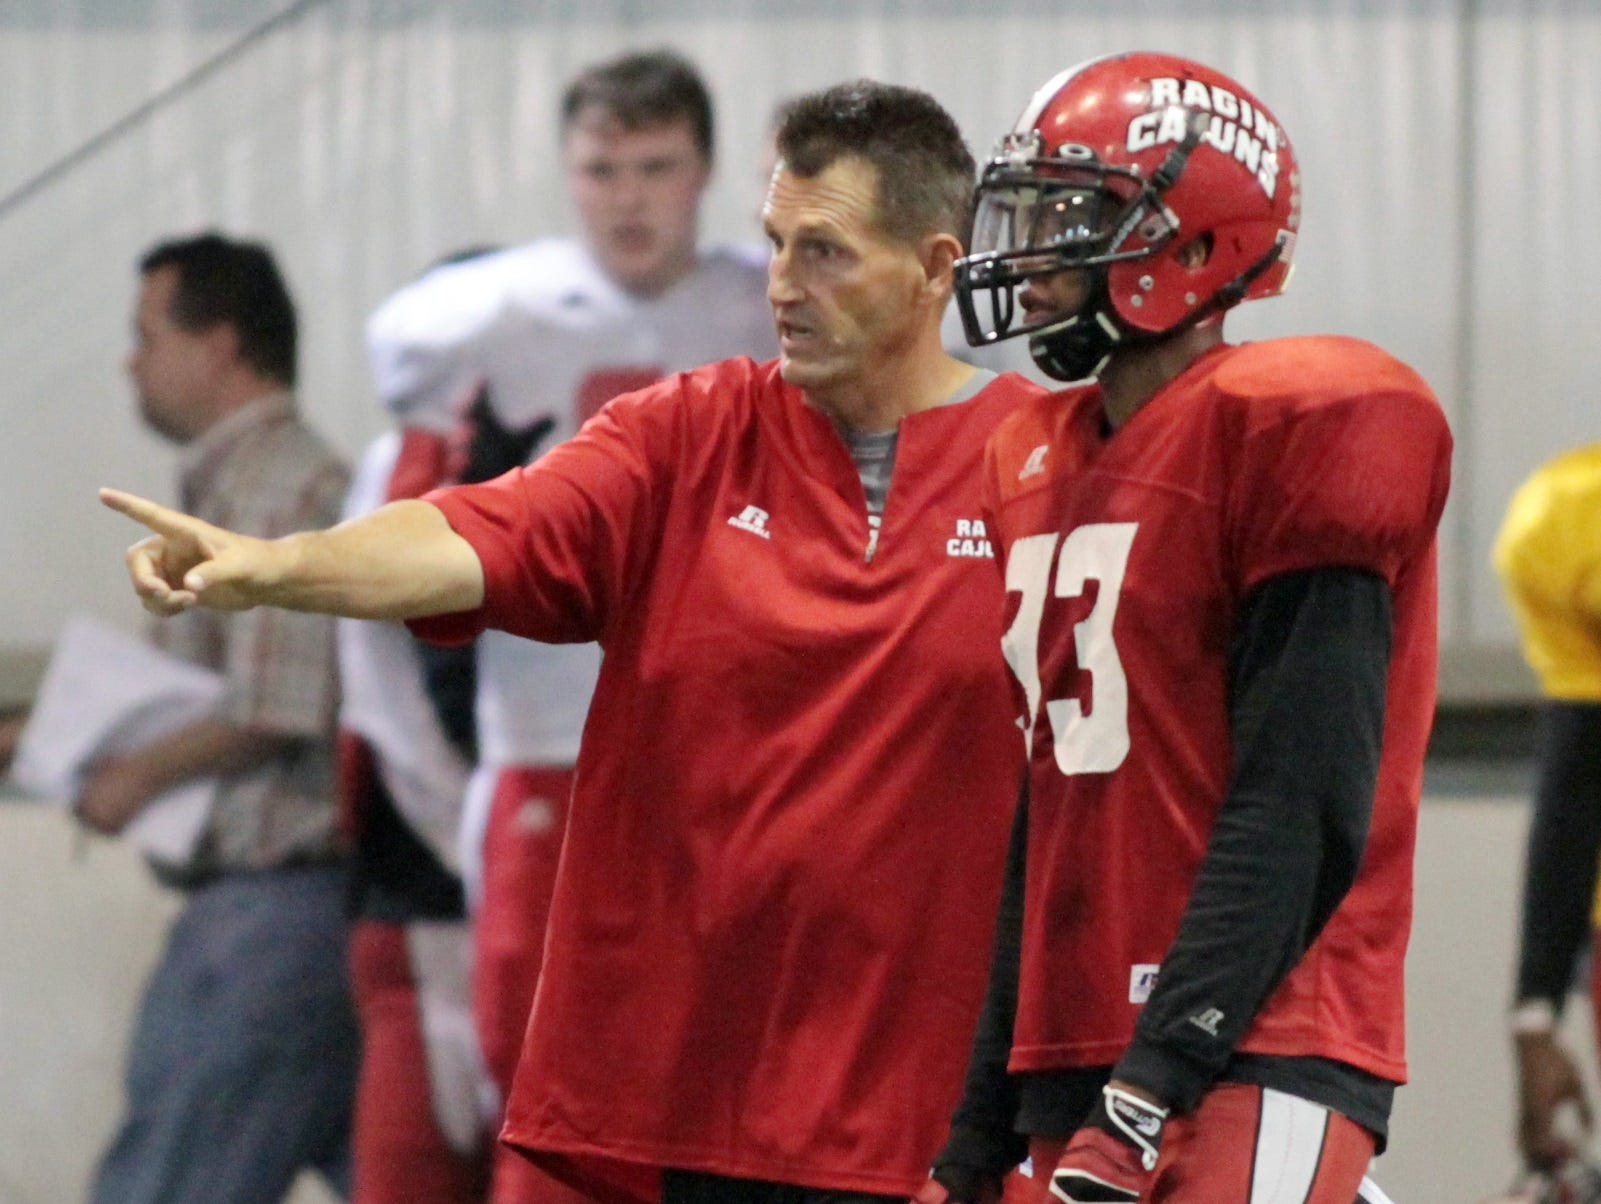 UL assistant coach David Saunders, shown here giving instruction to UL defensive back Trevence Patt (33) last season, has left the Ragin' Cajuns coaching staff 'for personal reasons.' UL safety Trevence Patt (33) gets instruction from cornerbacks coach David Saunders during practice.